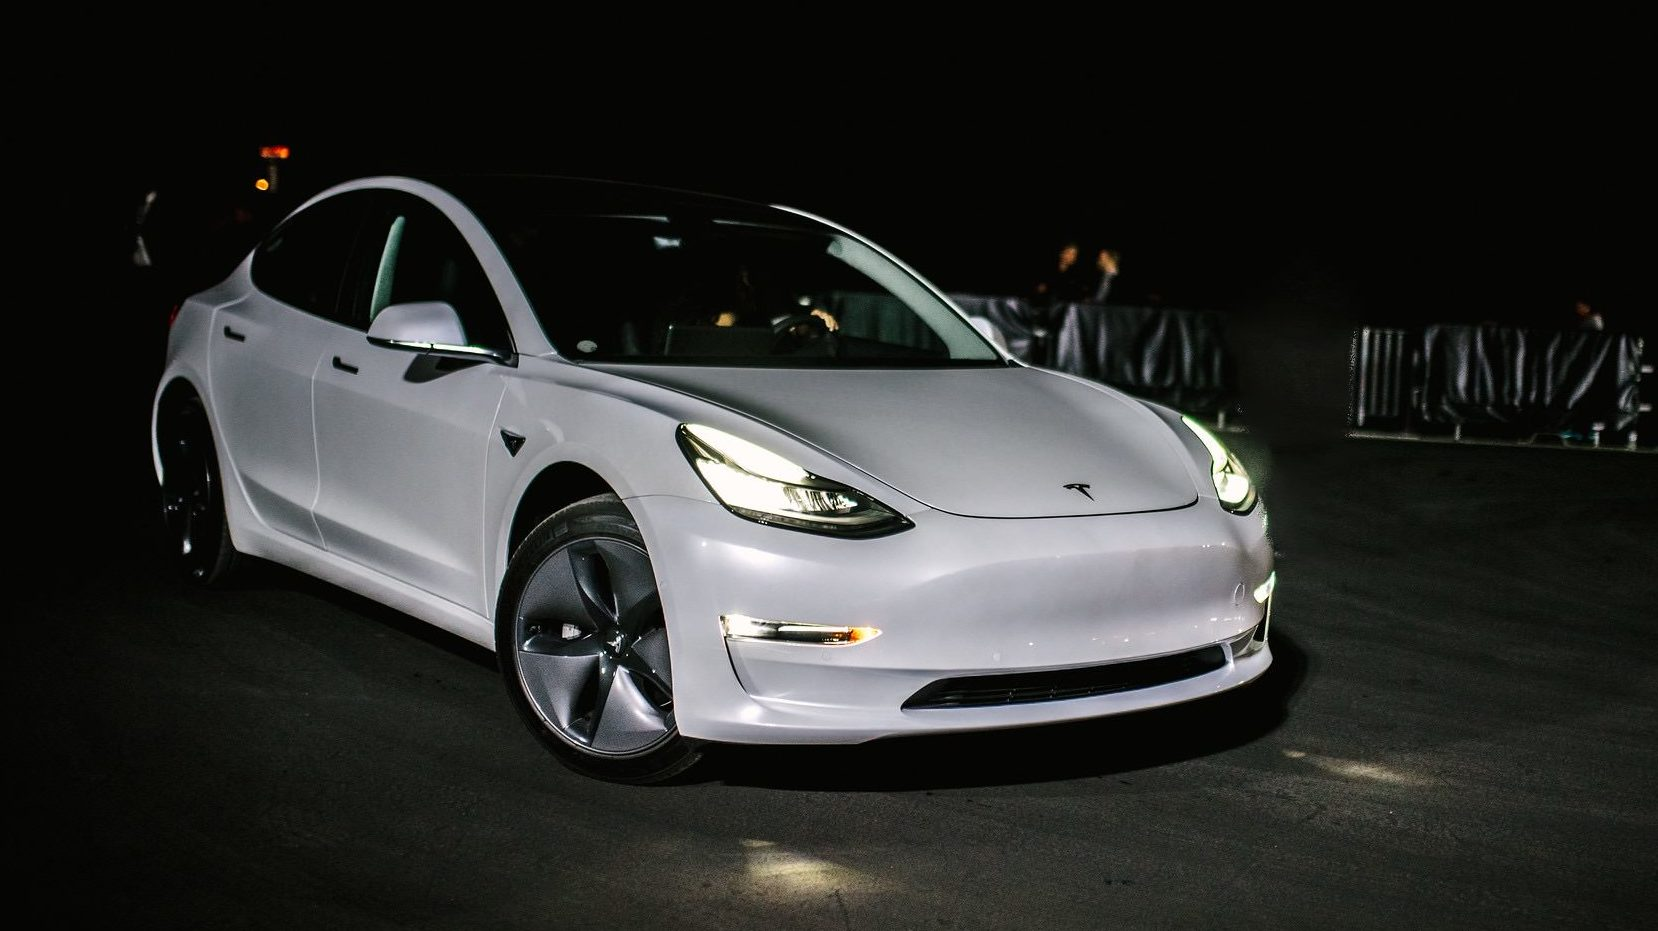 Tesla Model 3 Battery Pack Sized At 80 5 Kwh According To